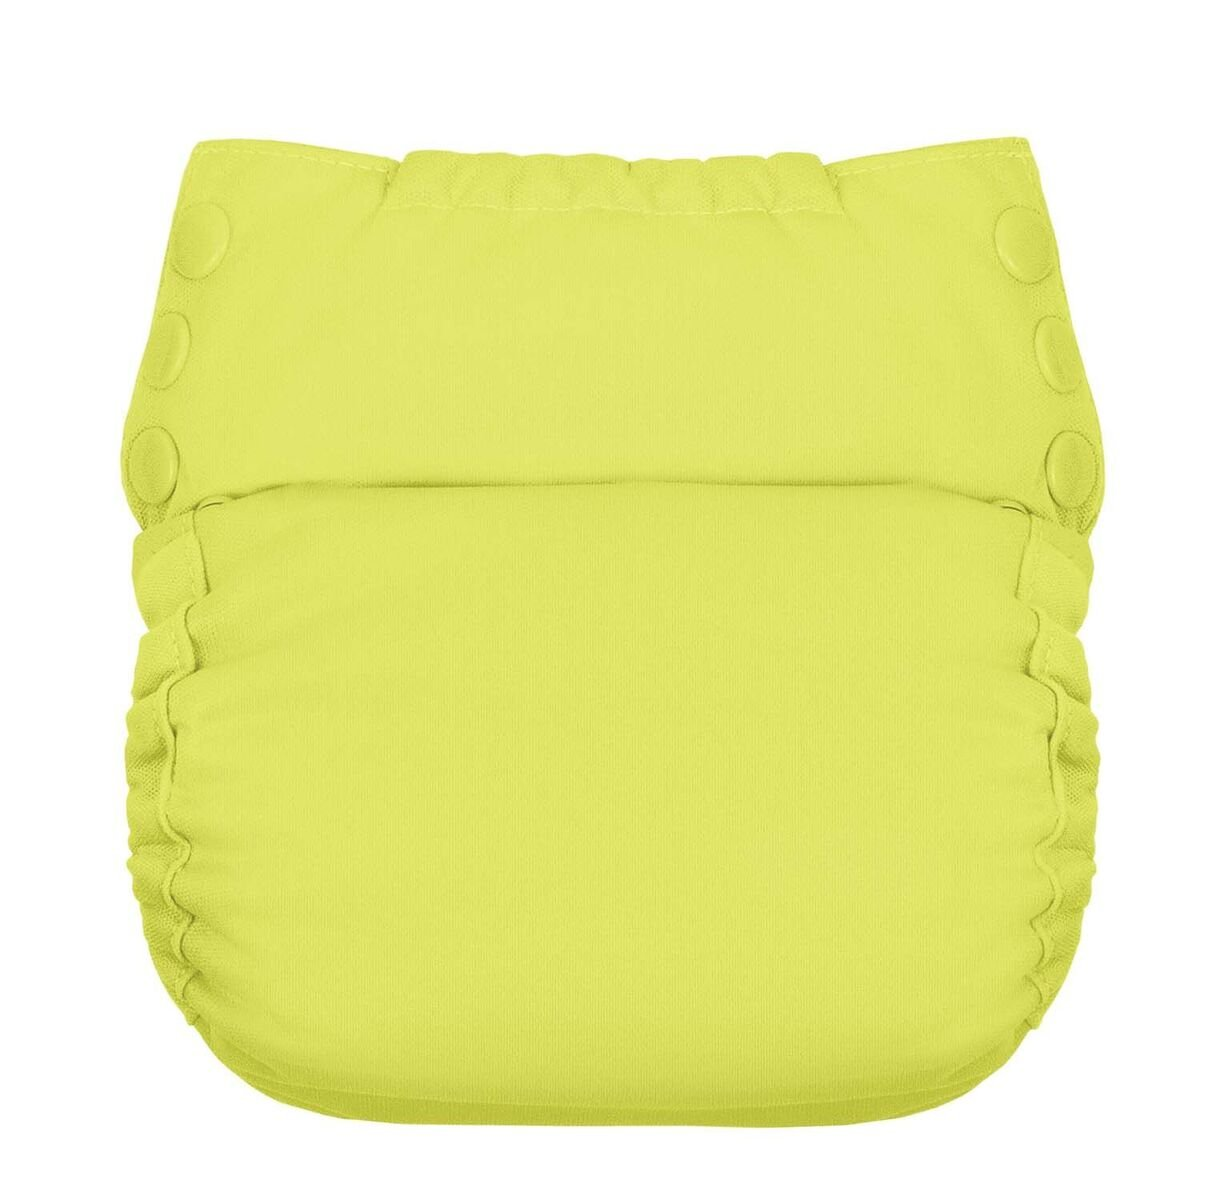 Flip Reusable Potty Training Cloth Diaper - Shell with Side Panels (Jolly)